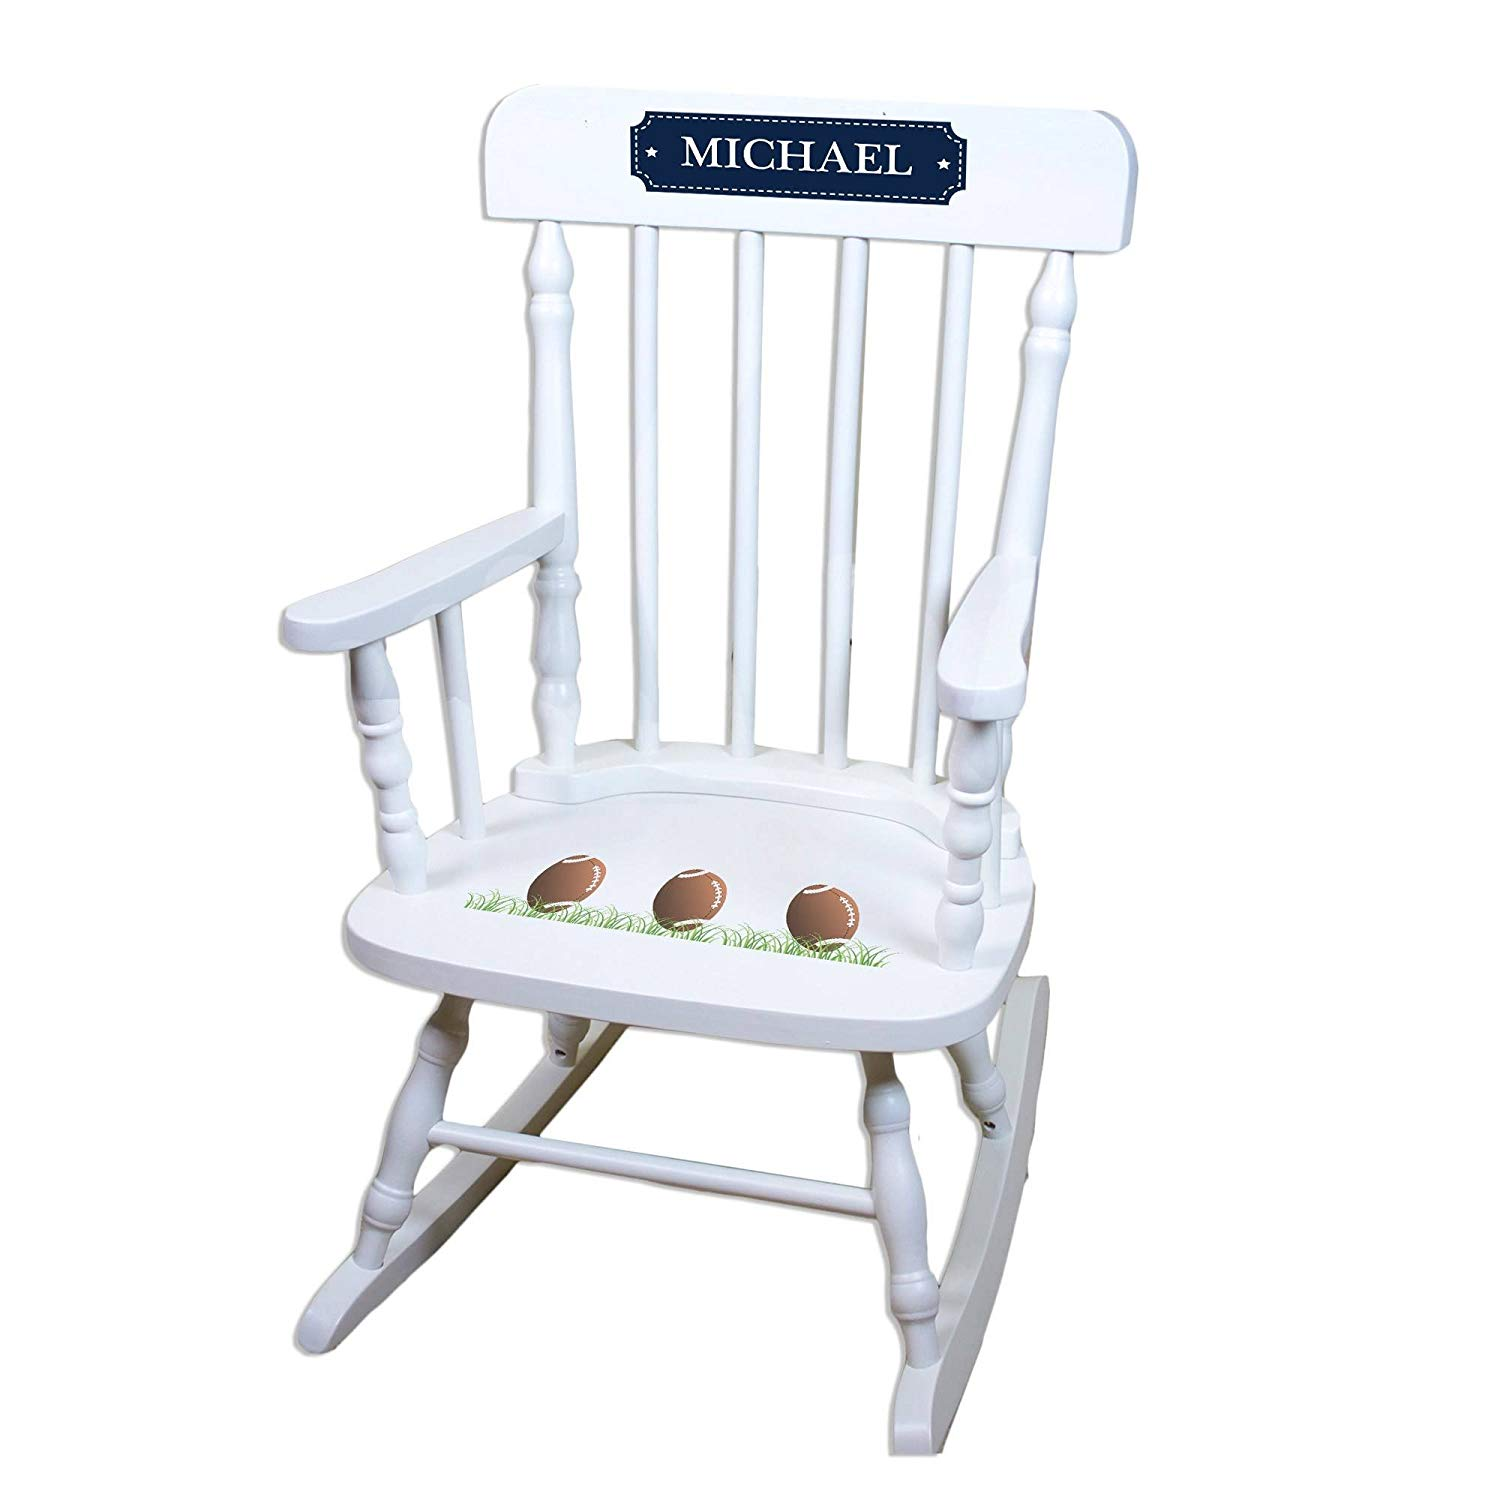 MyBambino Personalized Footballs White Wooden Childrens Rocking Chair